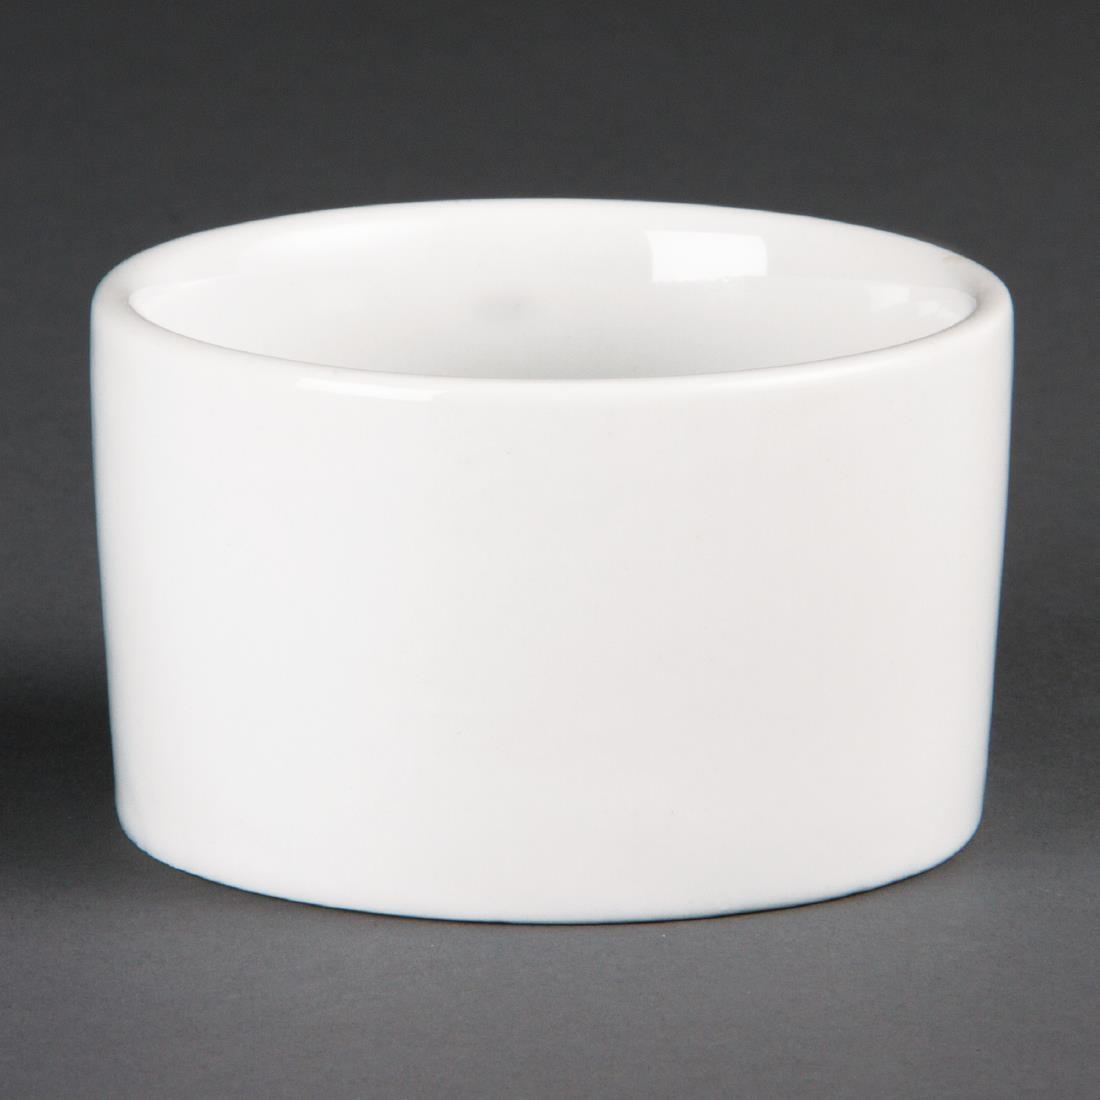 Olympia Whiteware Contemporary Ramekins 90mm